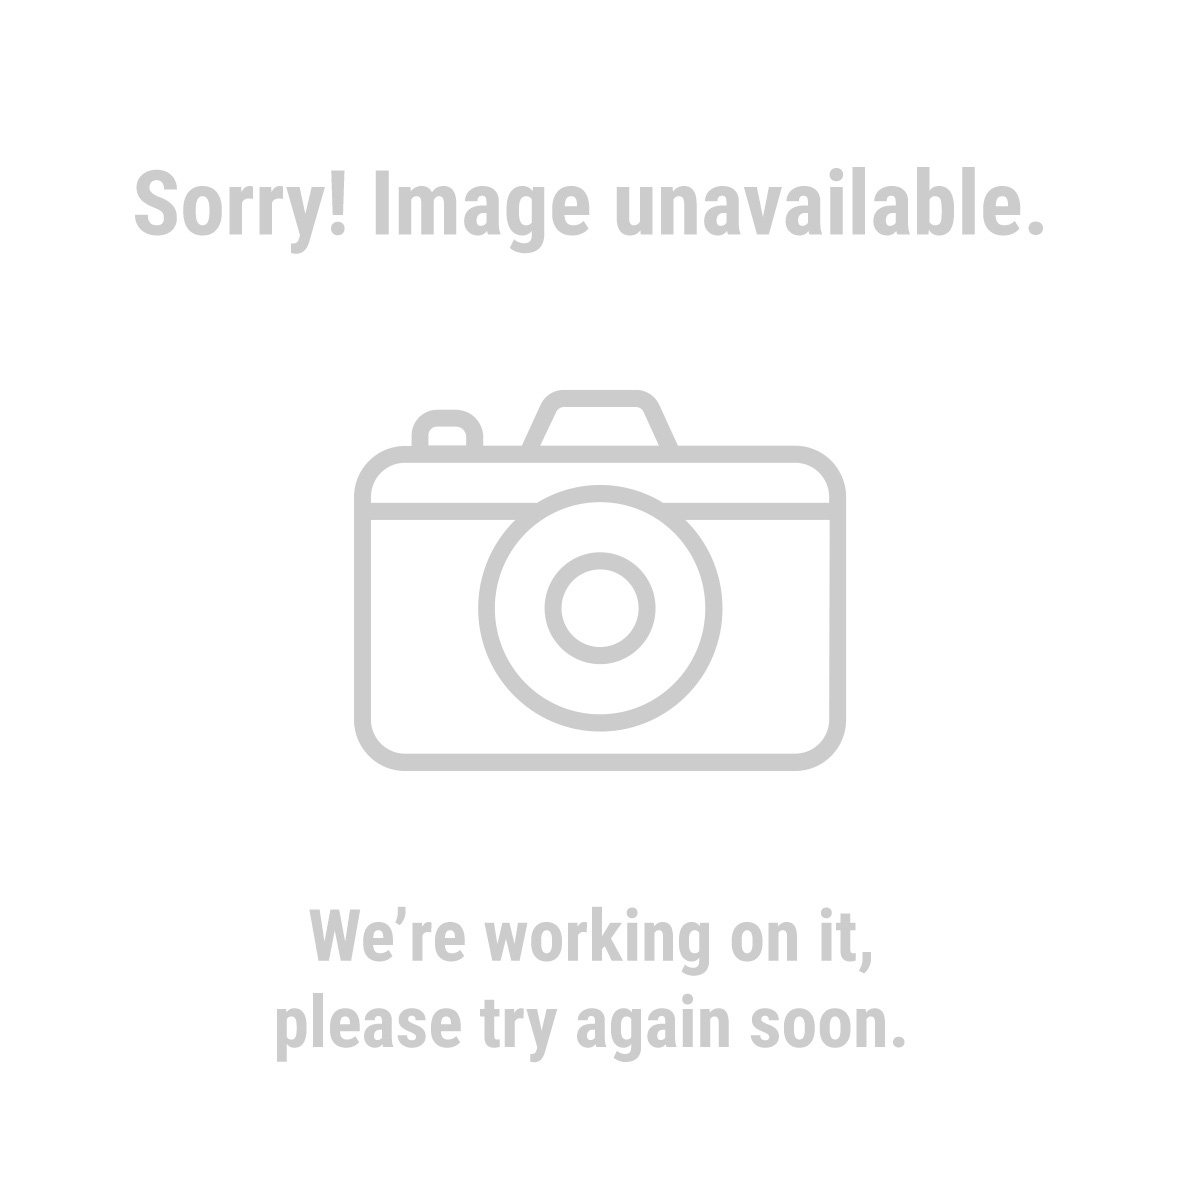 Haul-Master 66911 Step Stool/Working Platform